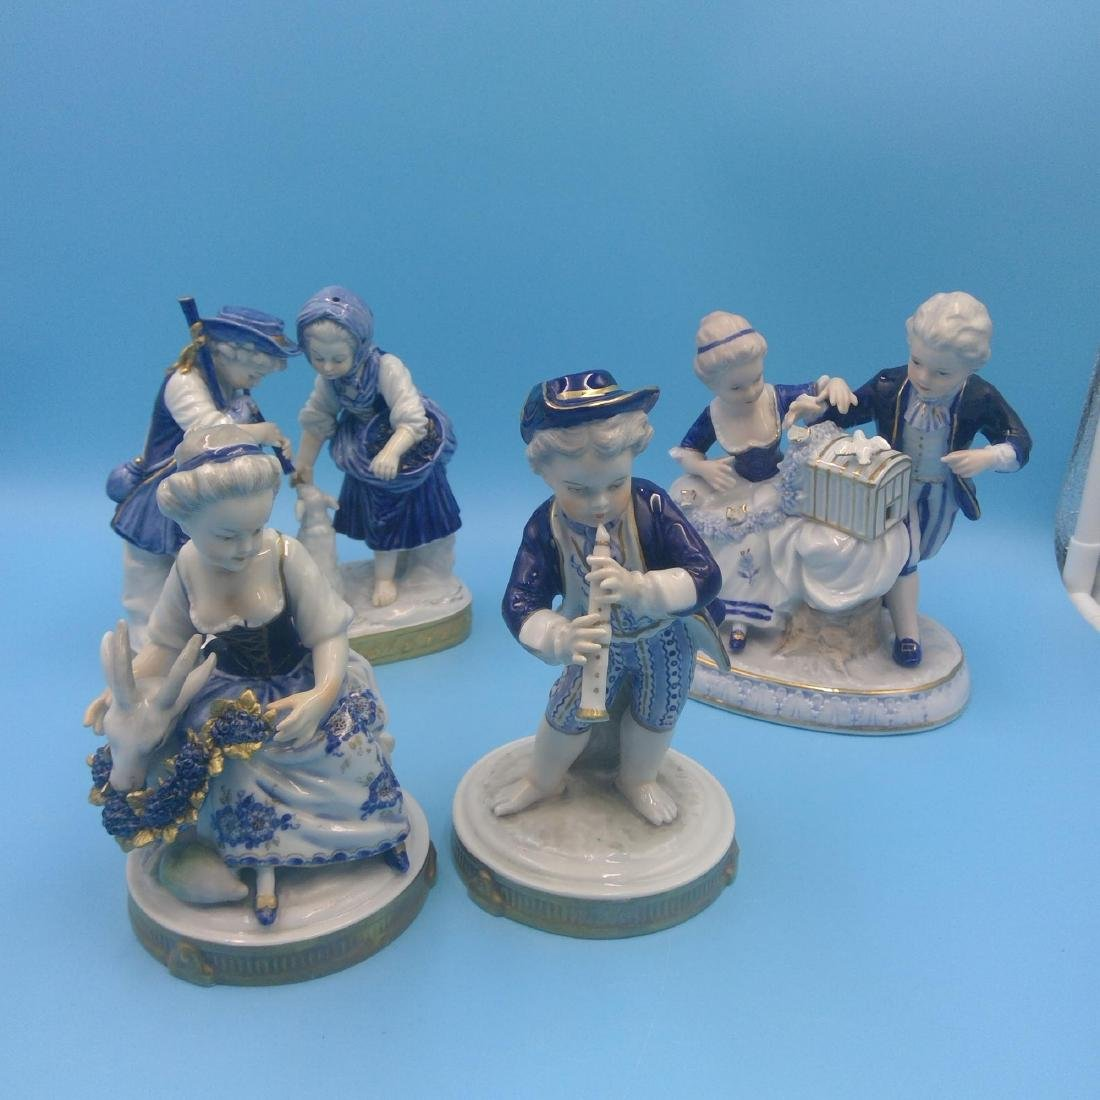 GROUP OF 4 ANTIQUE GERMAN PORCELAIN FIGURINES